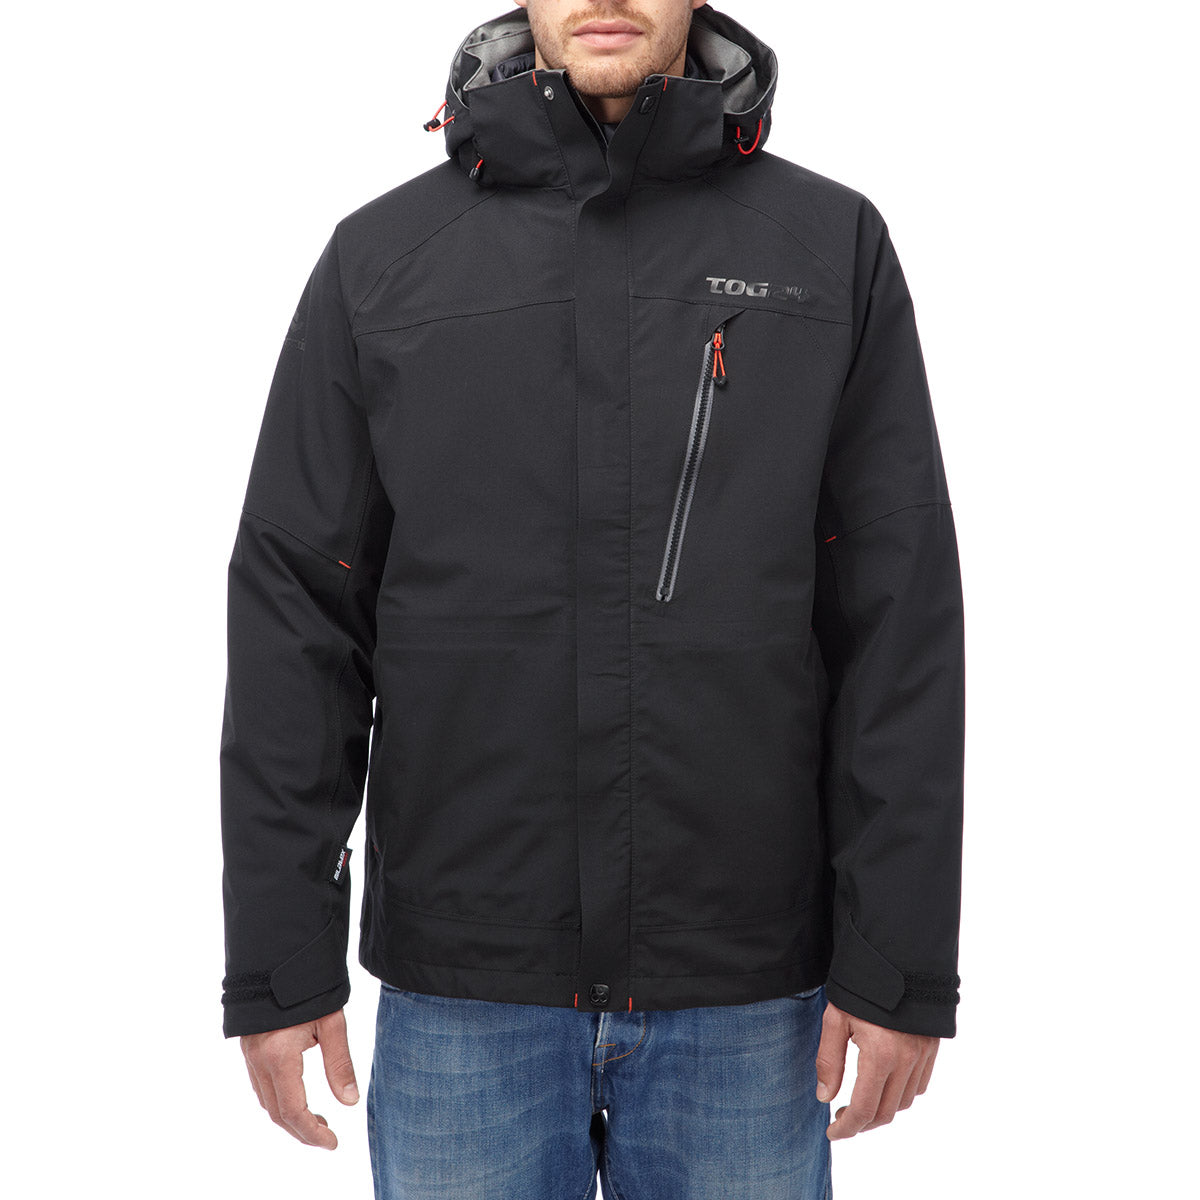 Shelter Mens Milatex 3-In-1 Jacket - Black image 4